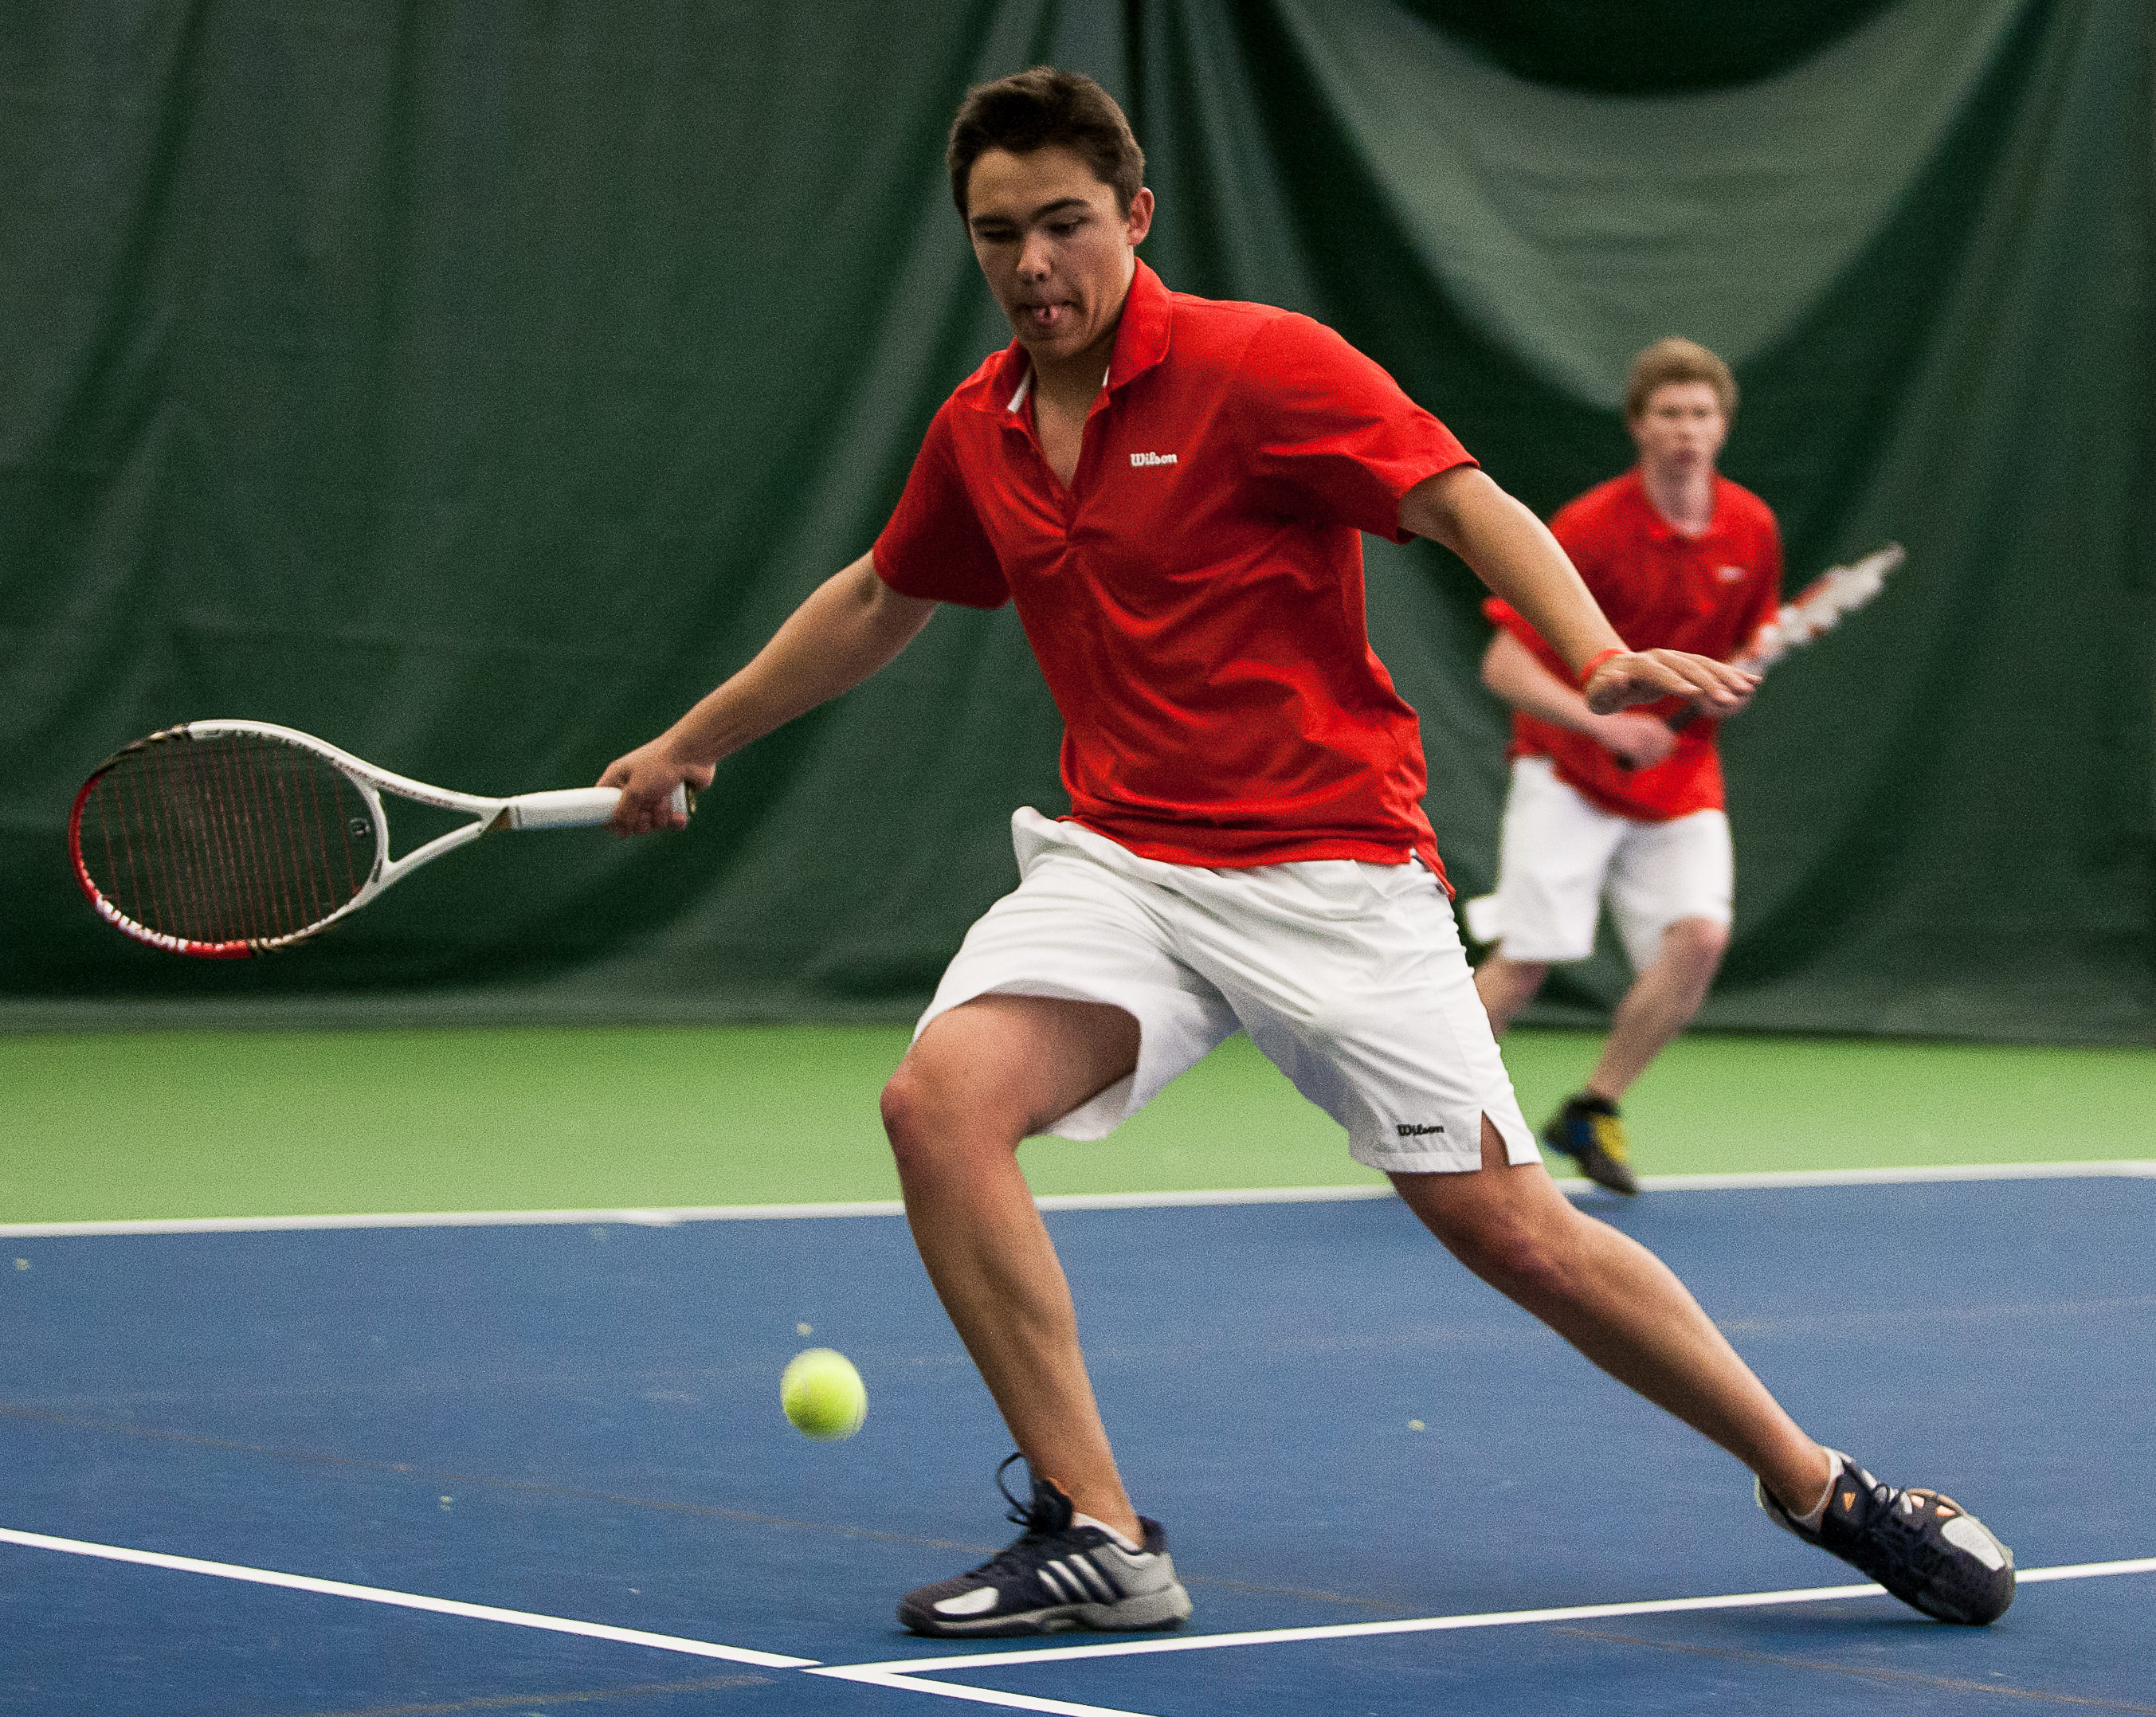 Zach Johnson returns a Judge Memorial shot as No. 1 doubles partner Graham Petersen looks on. The Park City High School tennis team hosted Judge Memorial at the PC MARC on Monday afternoon, winning the match 3-2. Christopher Reeves/The Park Record